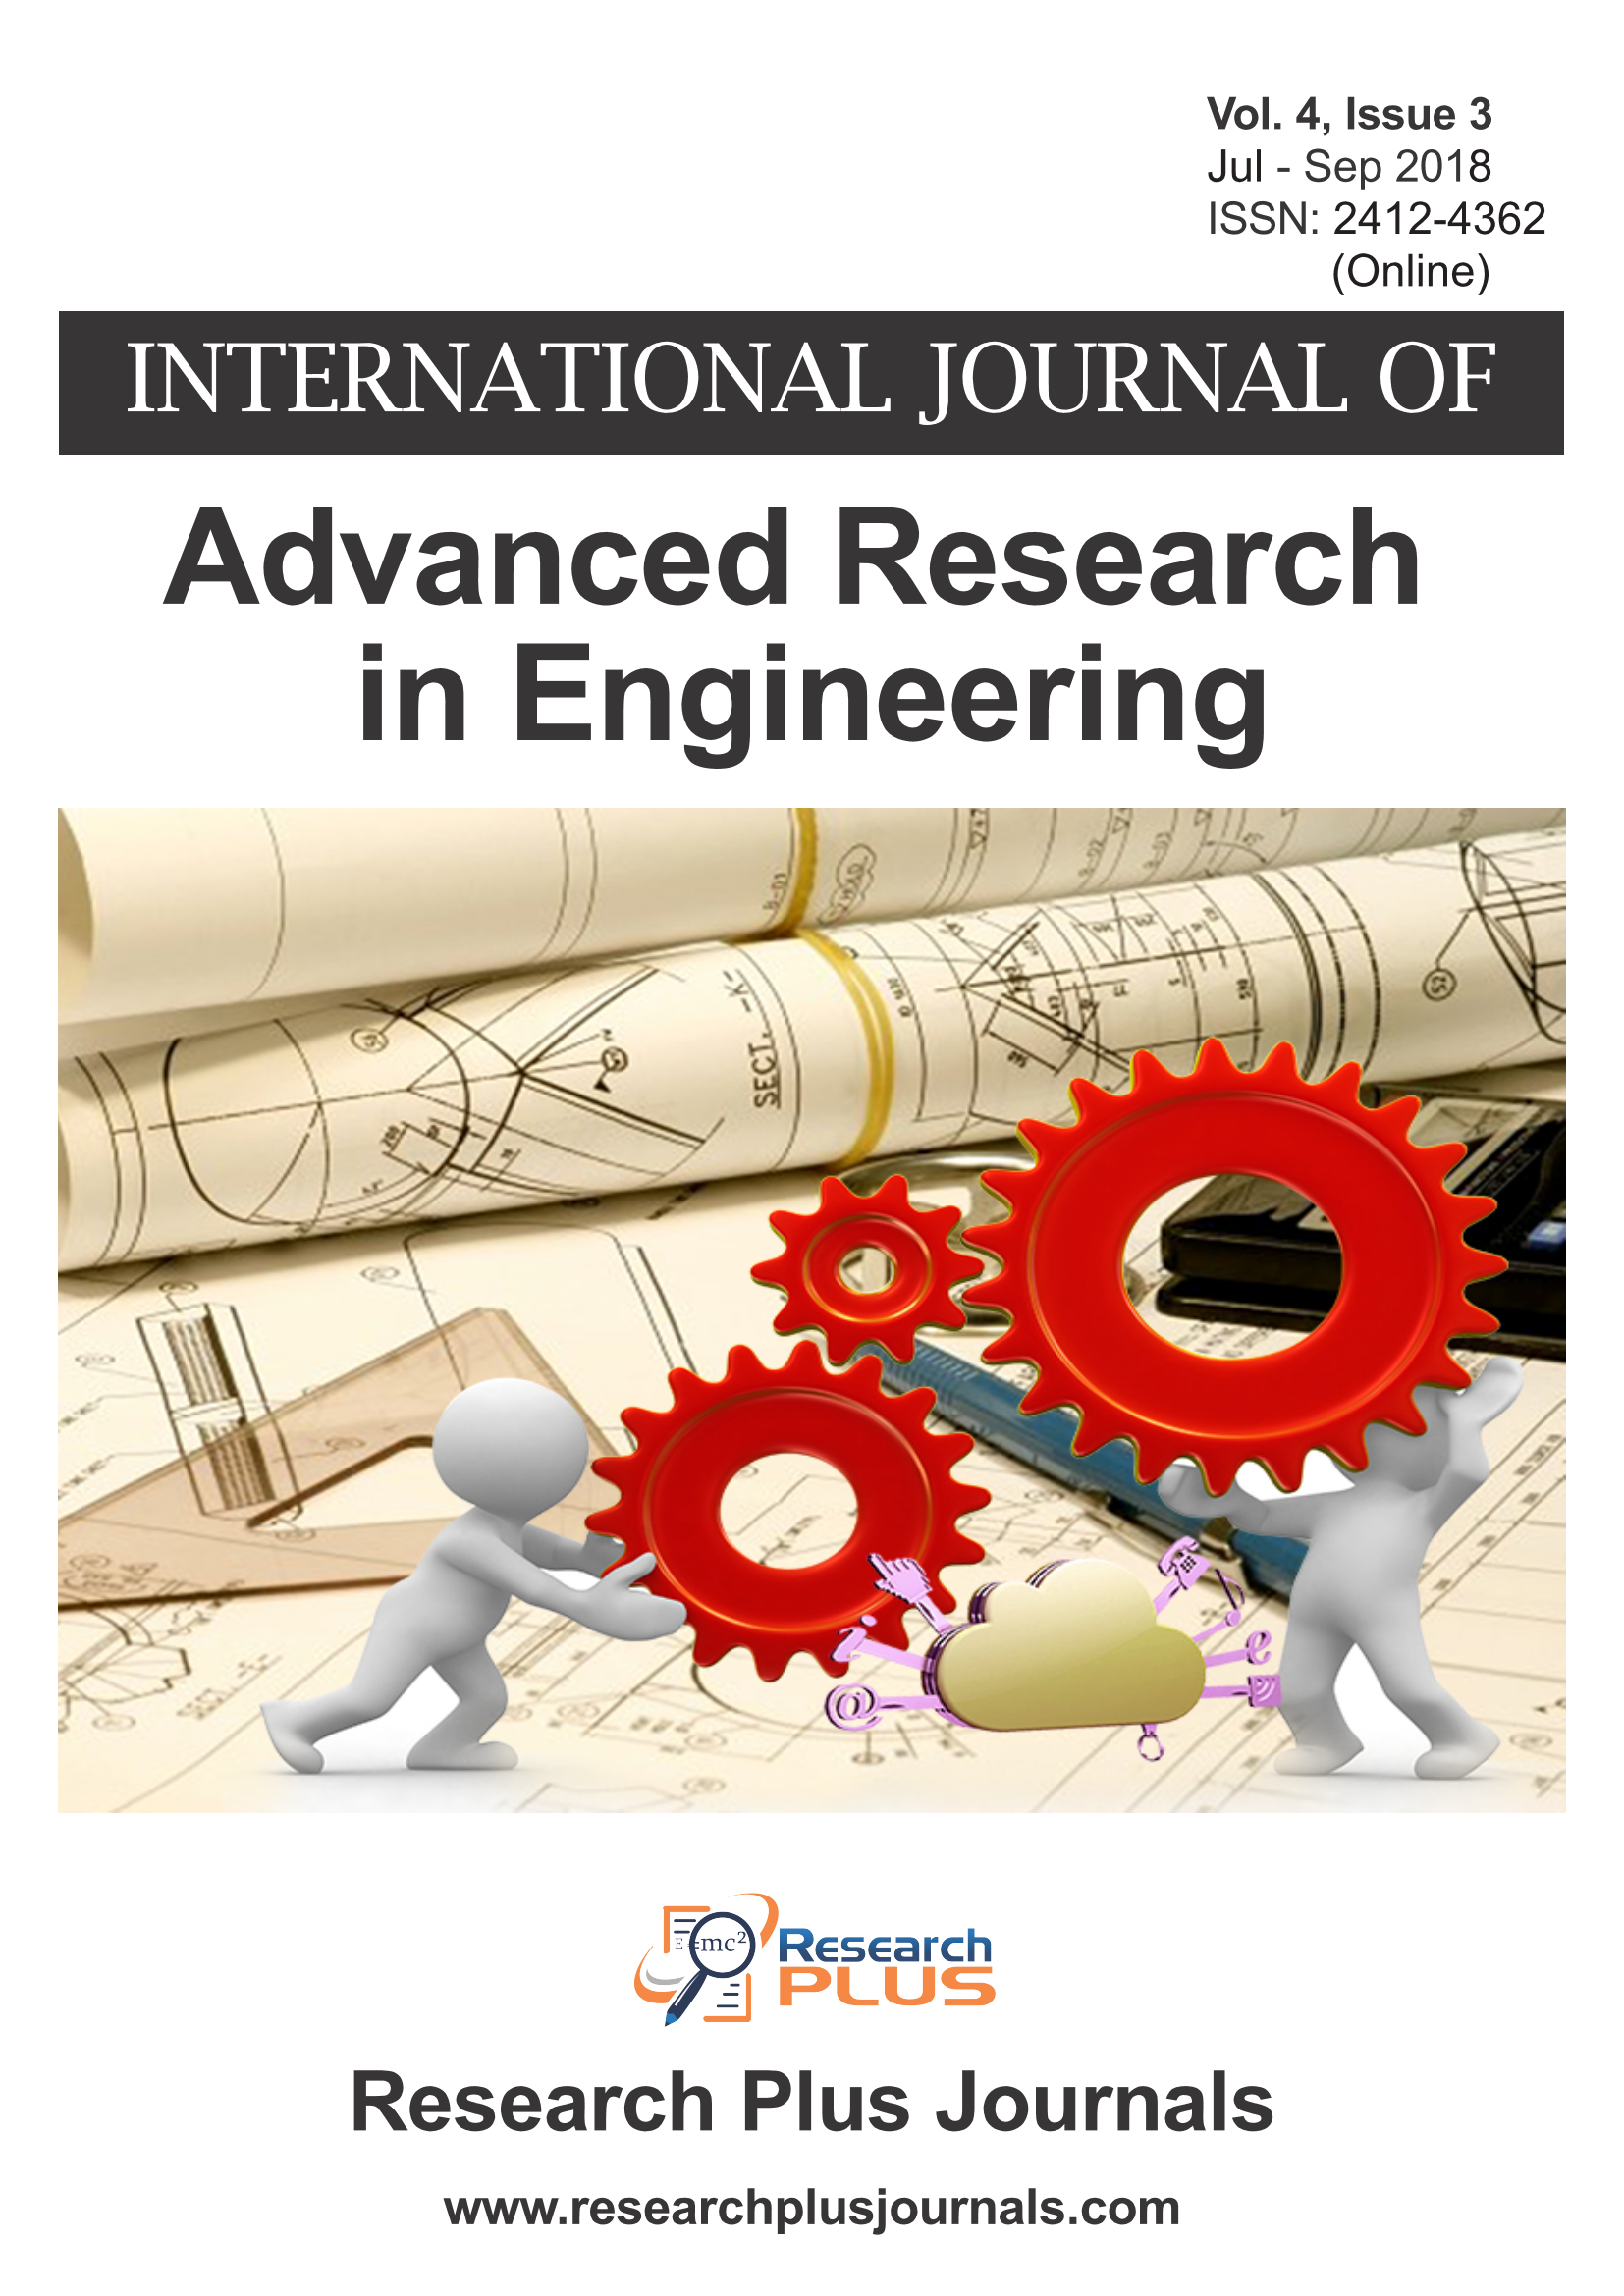 Volume 4, Issue 3, International Journal of Advanced Research in Engineering (IJARE)  (Online ISSN 2412-4362)